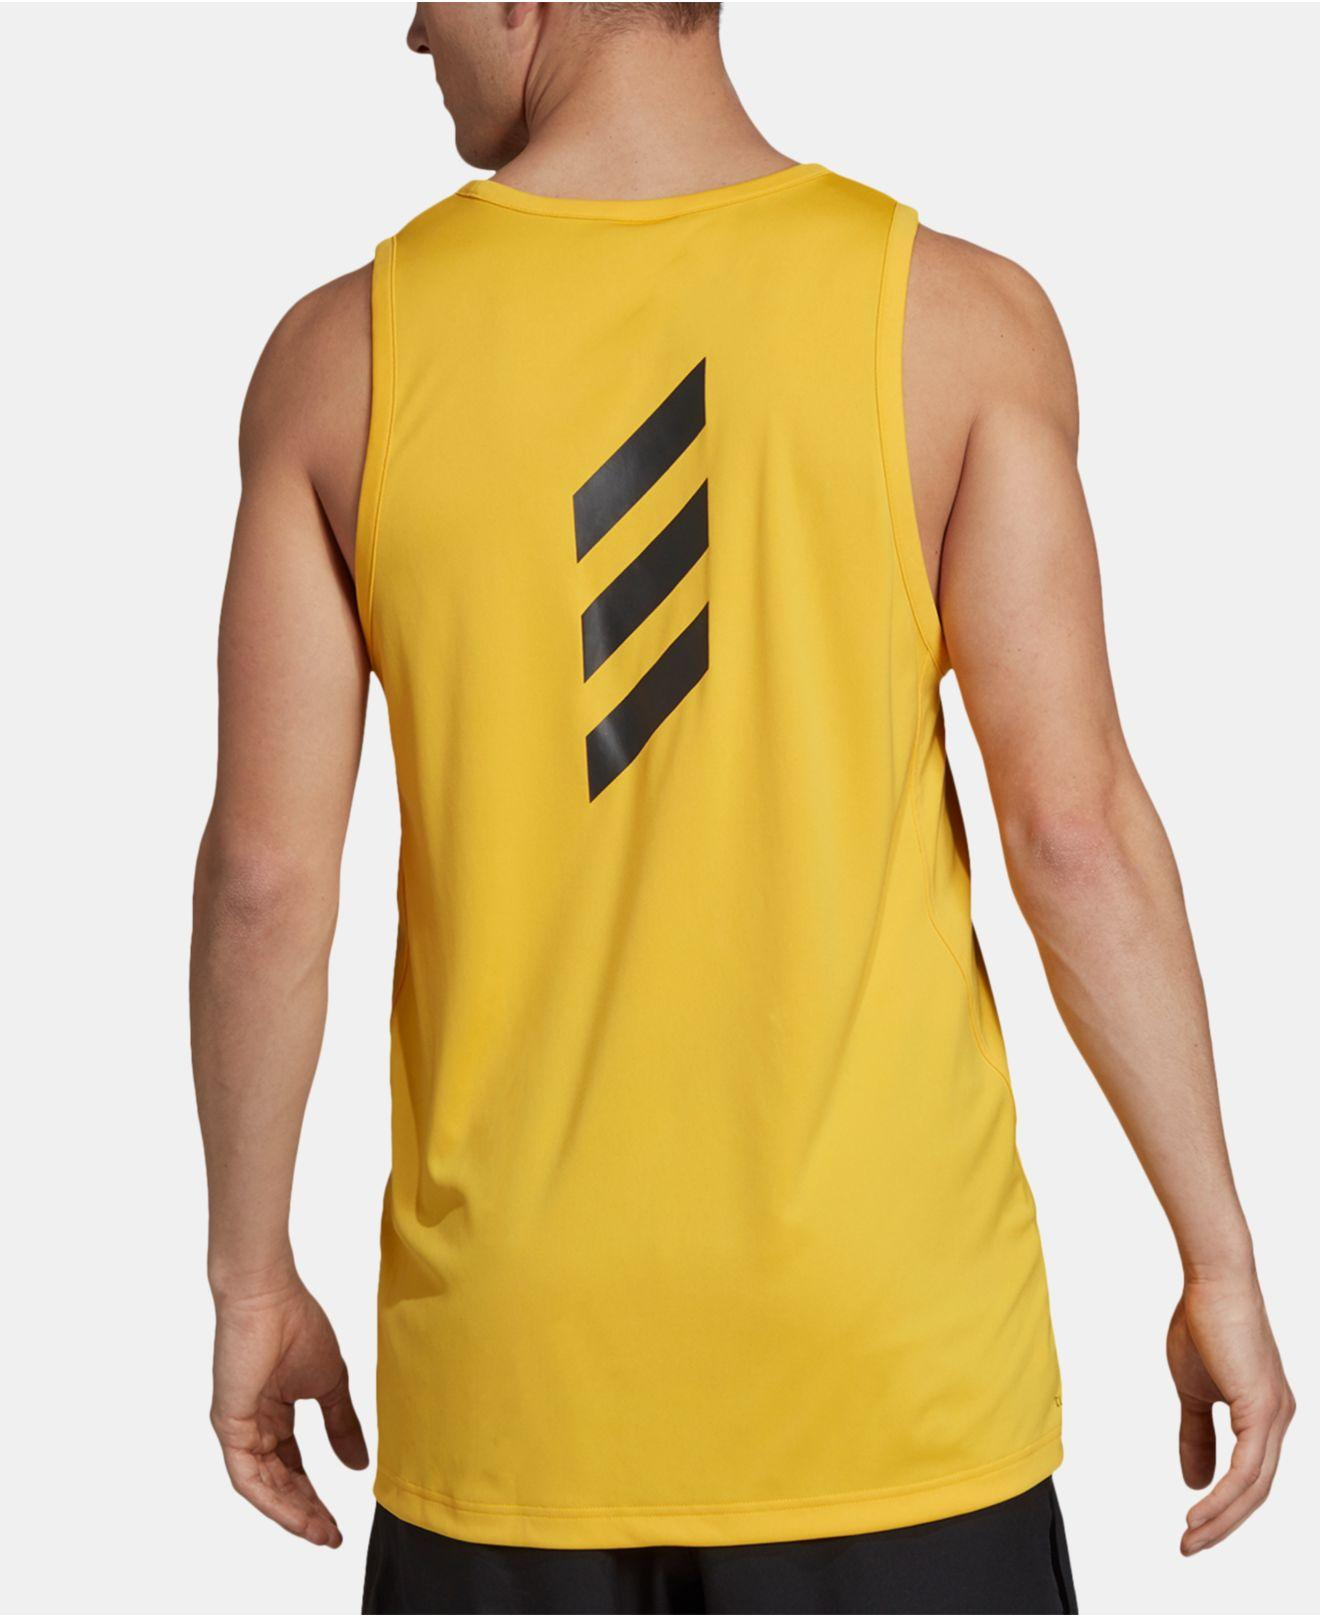 Lyst Top Yellow Adidas Tank For Climalite® Men In FTclK1J